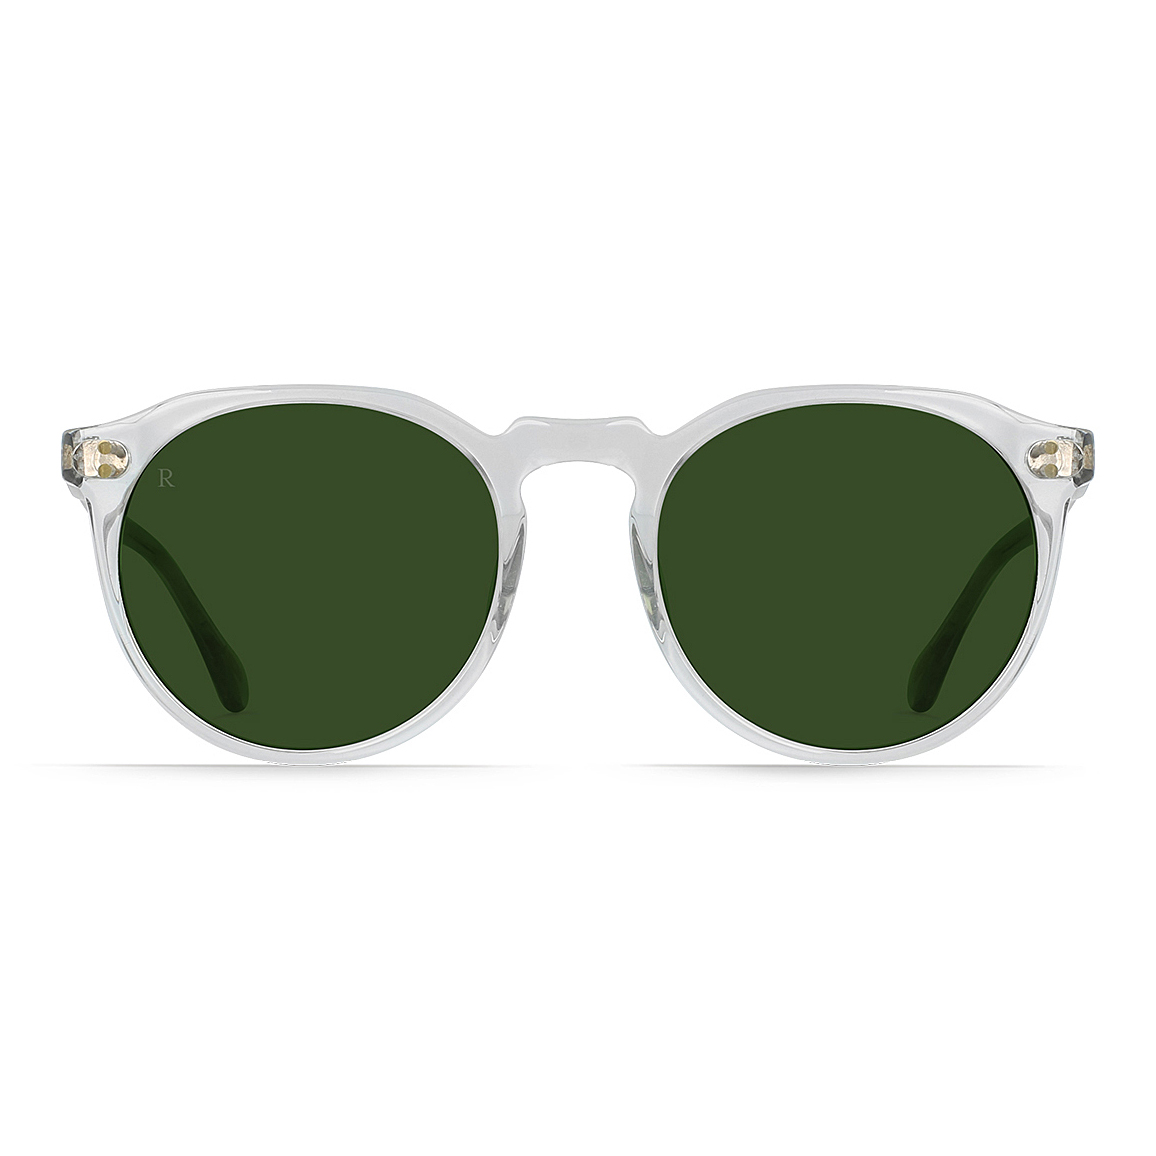 The Shades - New year. New shades. Period. Period. ($135)